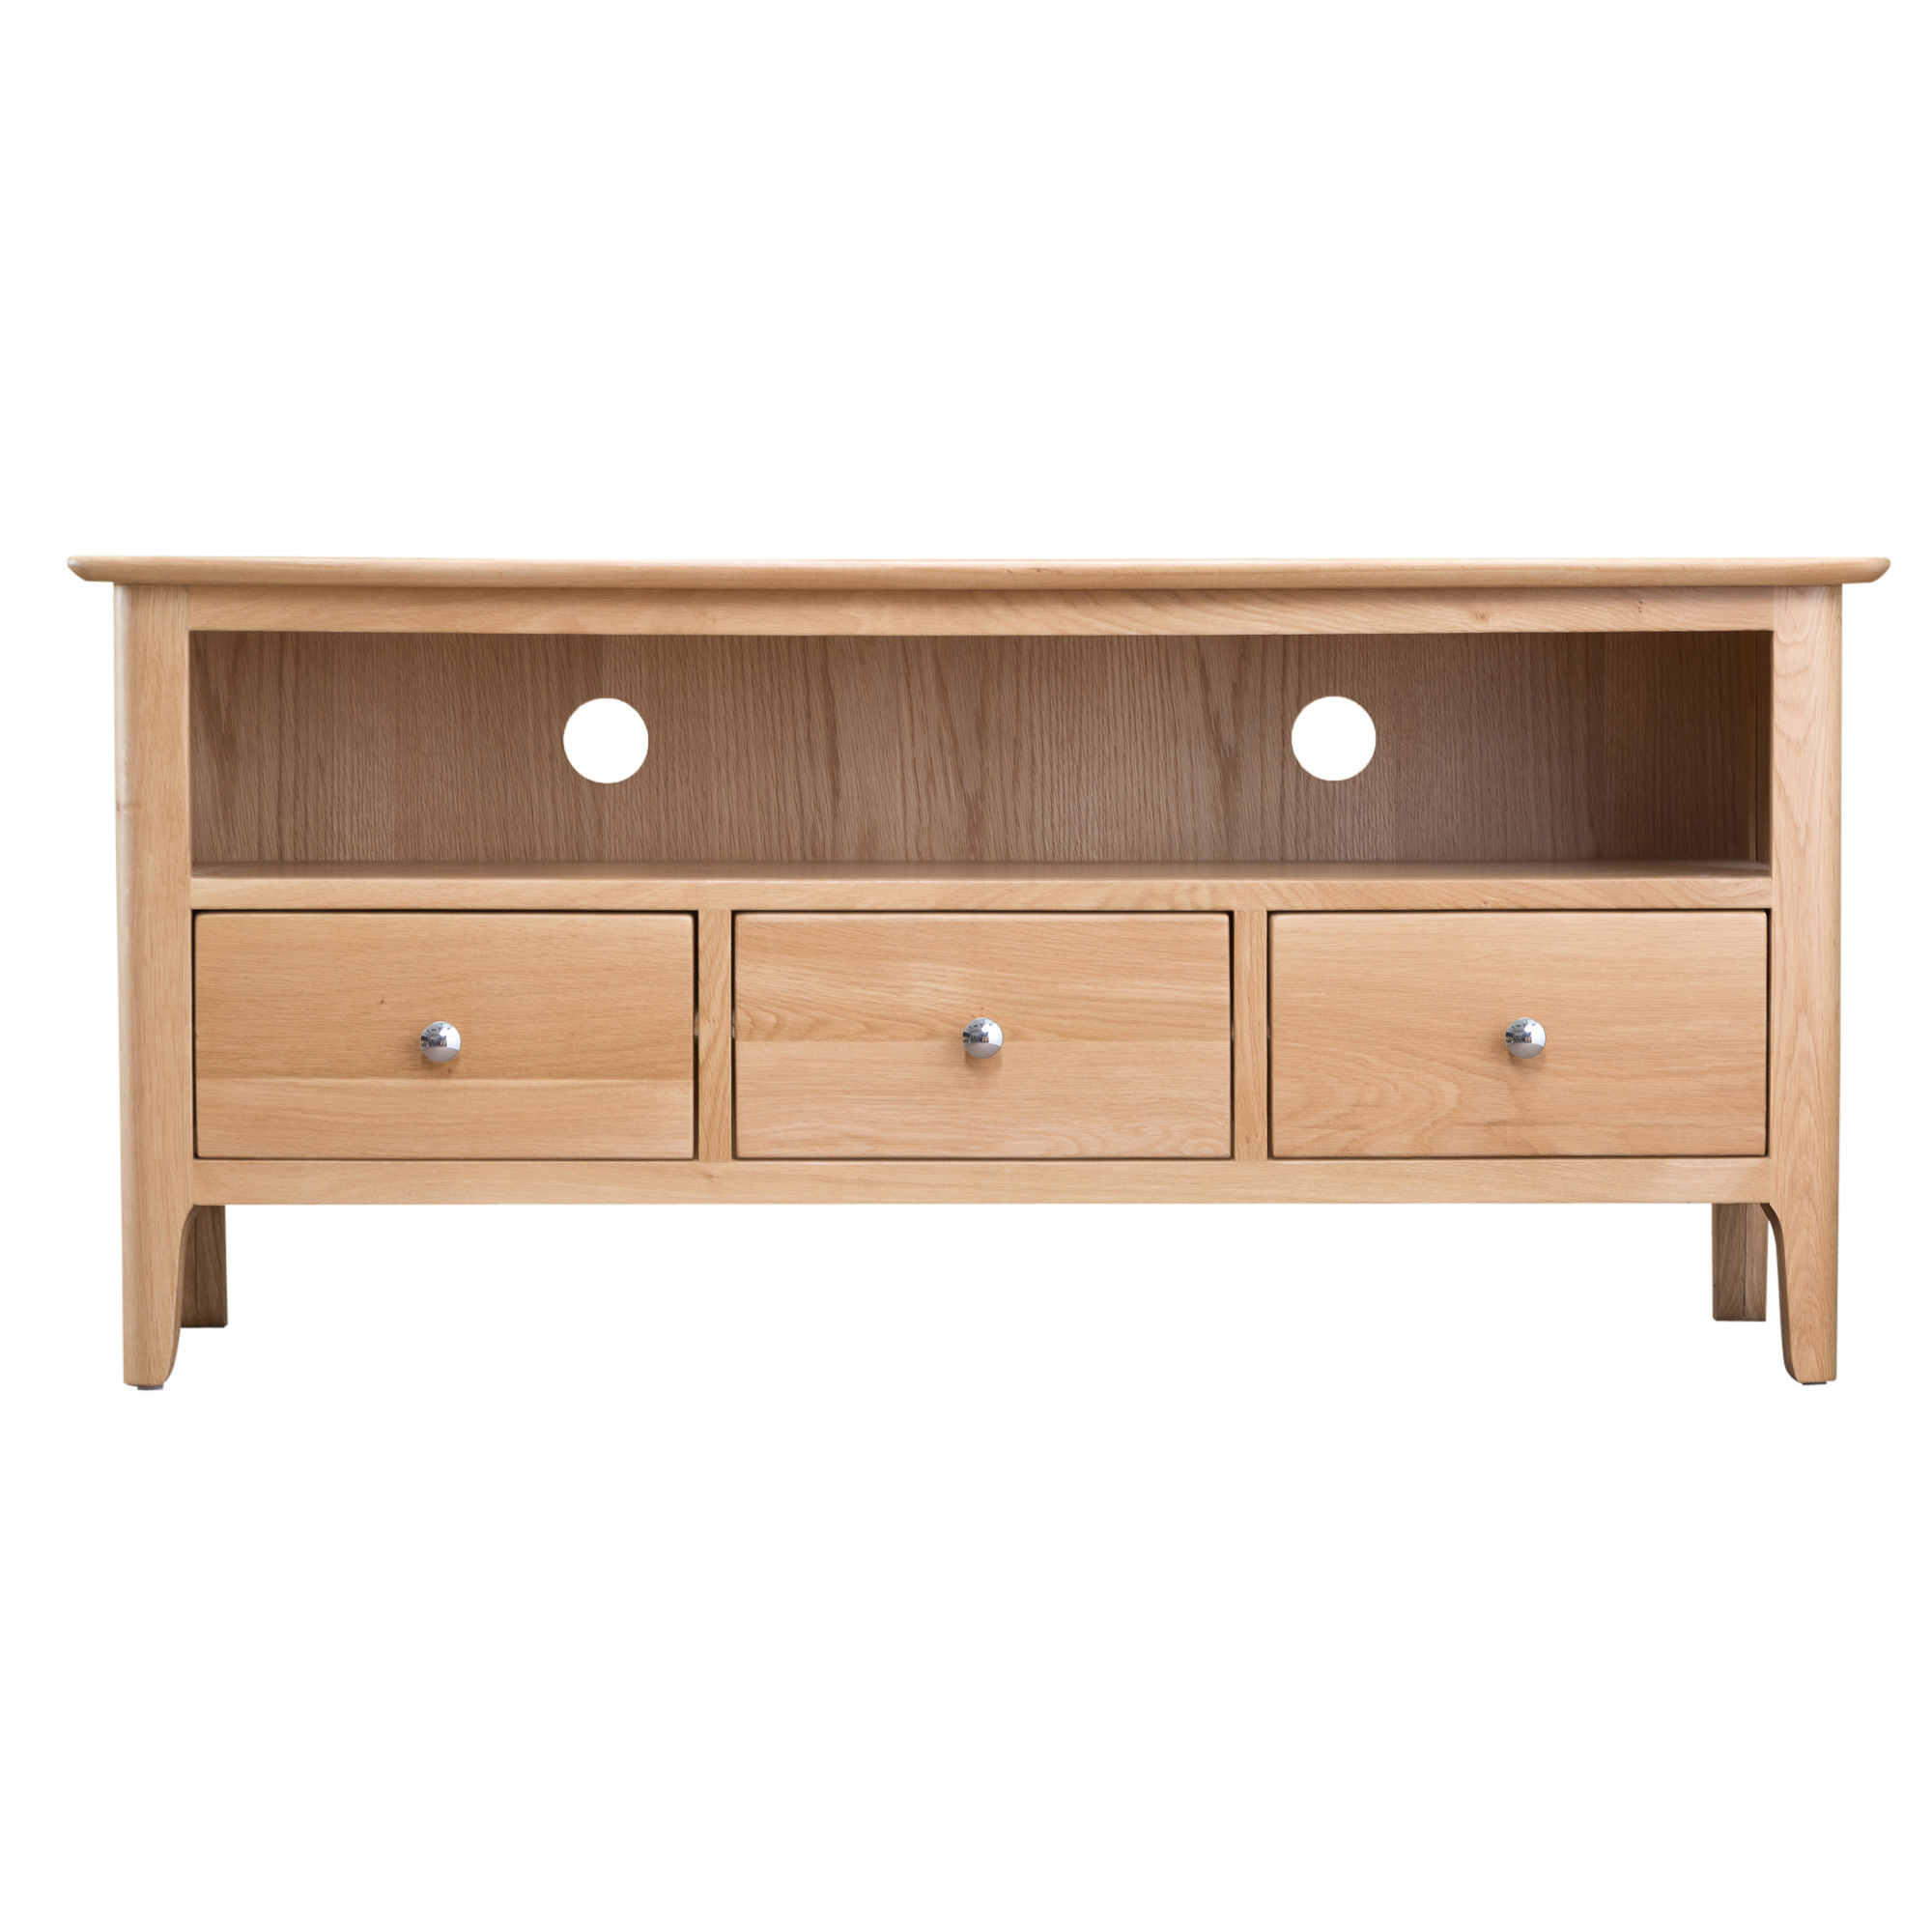 Bedroom Furniture For Sale Dorset